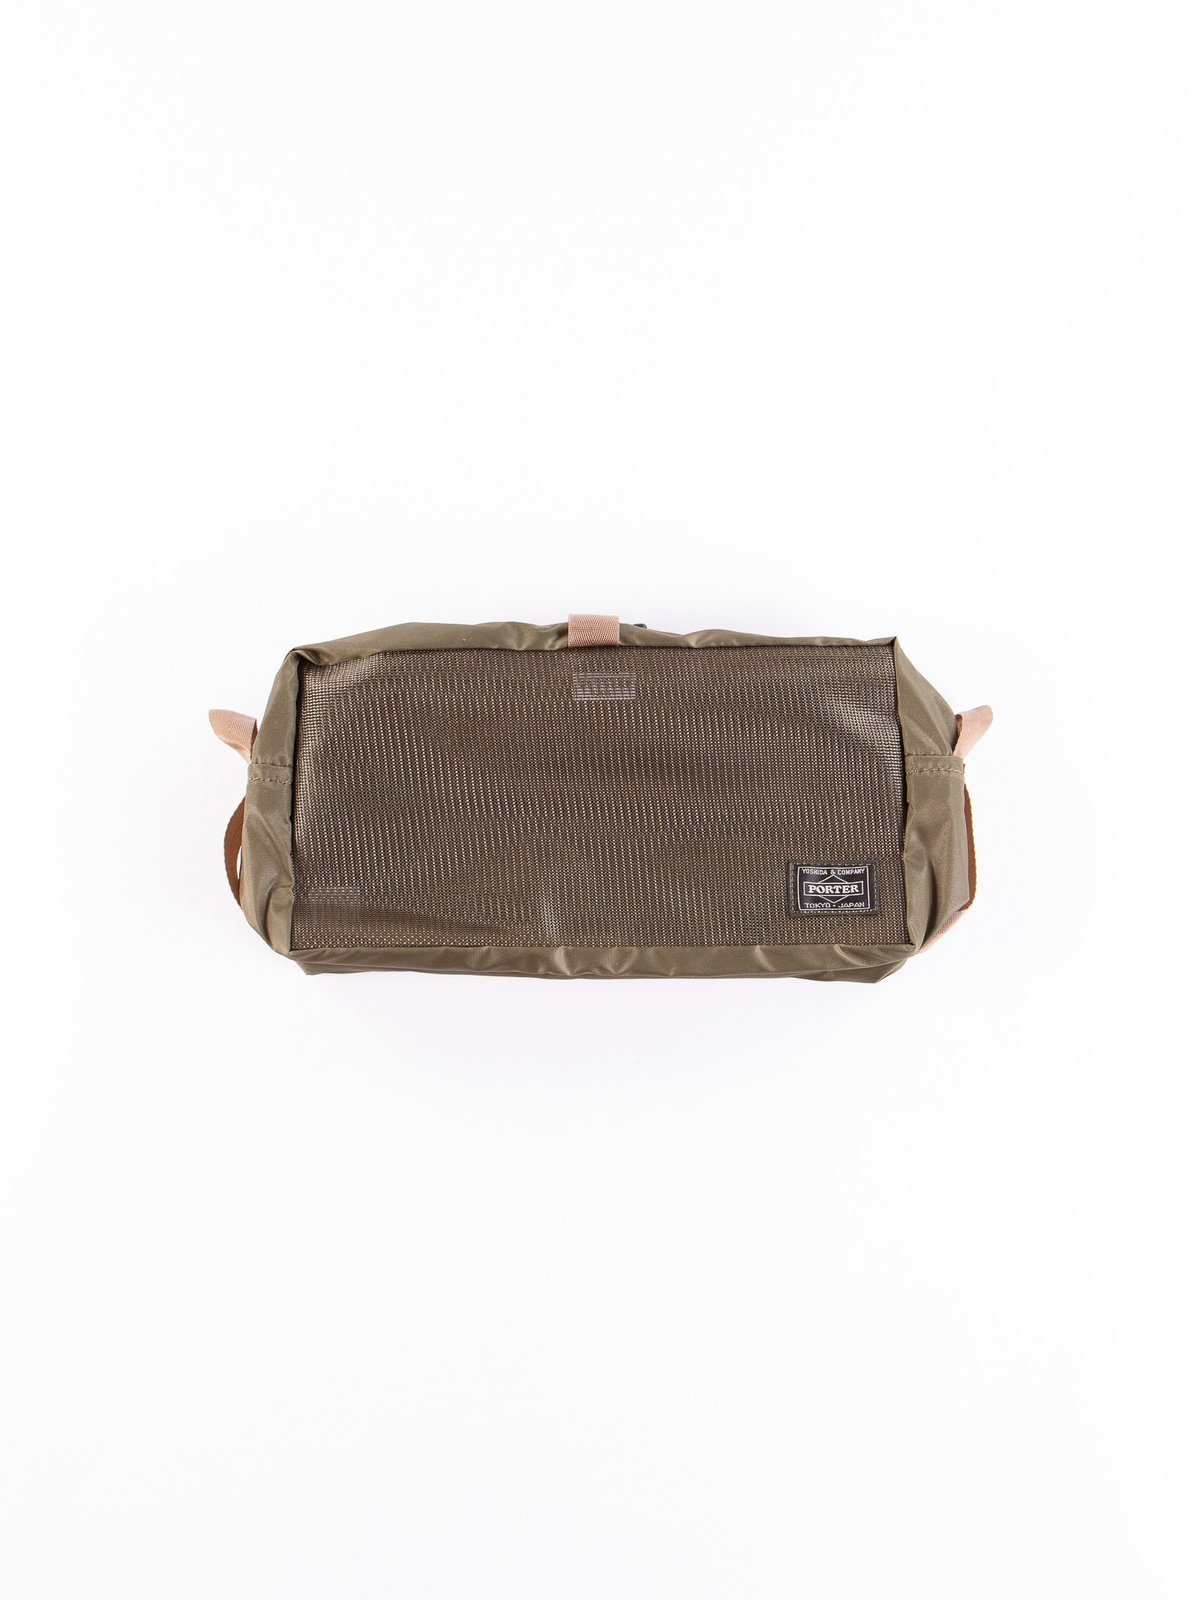 Olive Drab Snack Pack 09809 Pouch Medium - Image 1